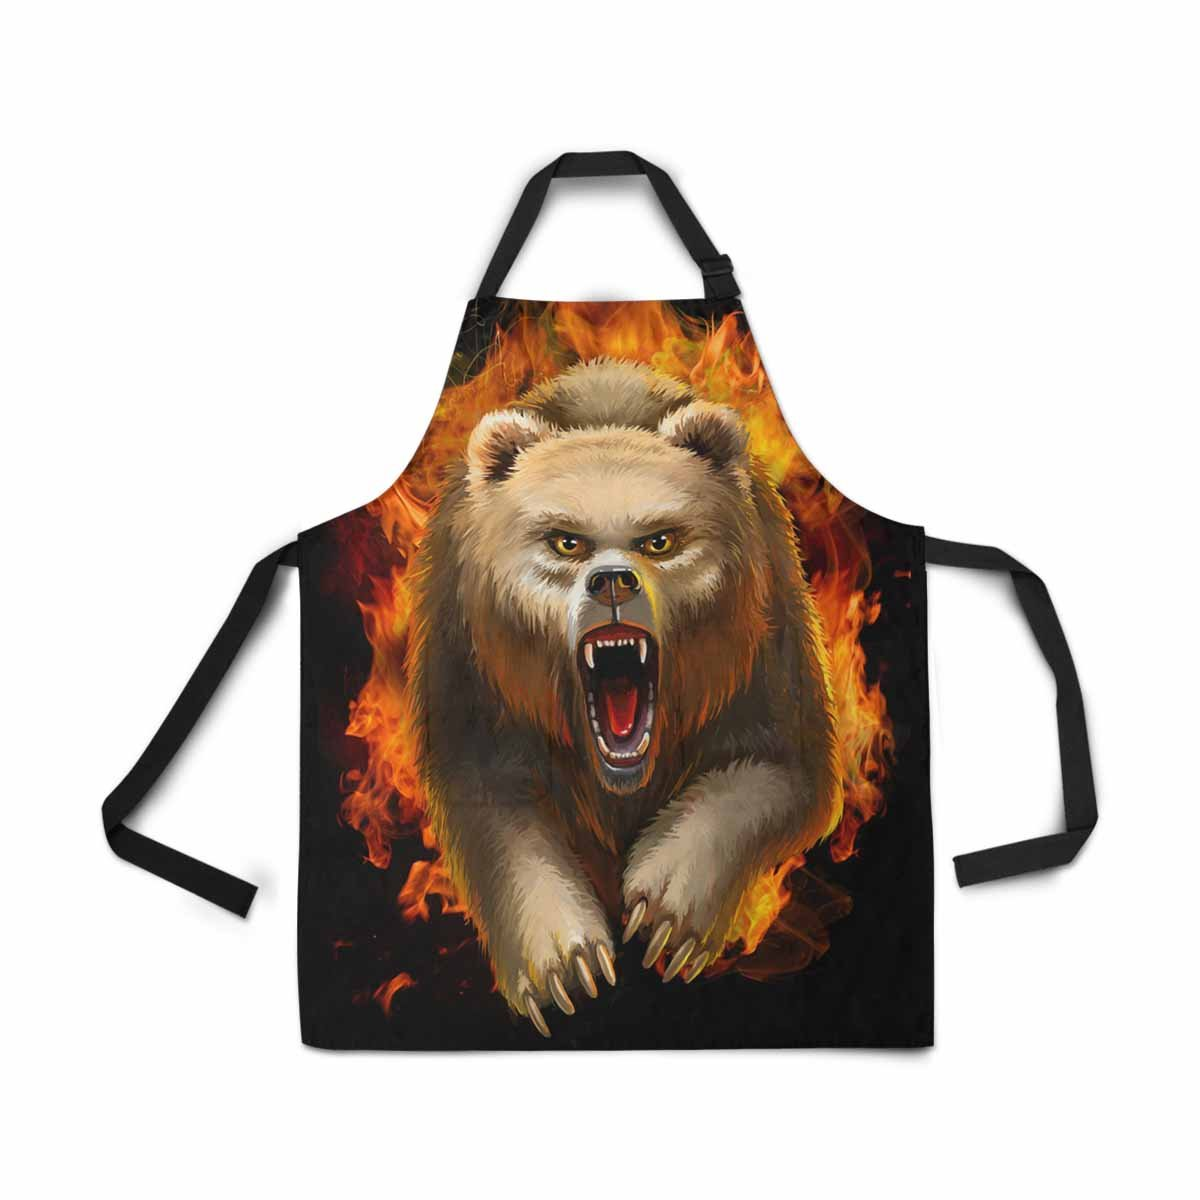 InterestPrint Fierce Bear Apron Kitchen Cook for Women Men Girls Chef with Pockets, Forest Animal Funny Adjustable Bib Baking Paint Cooking Apron Dress